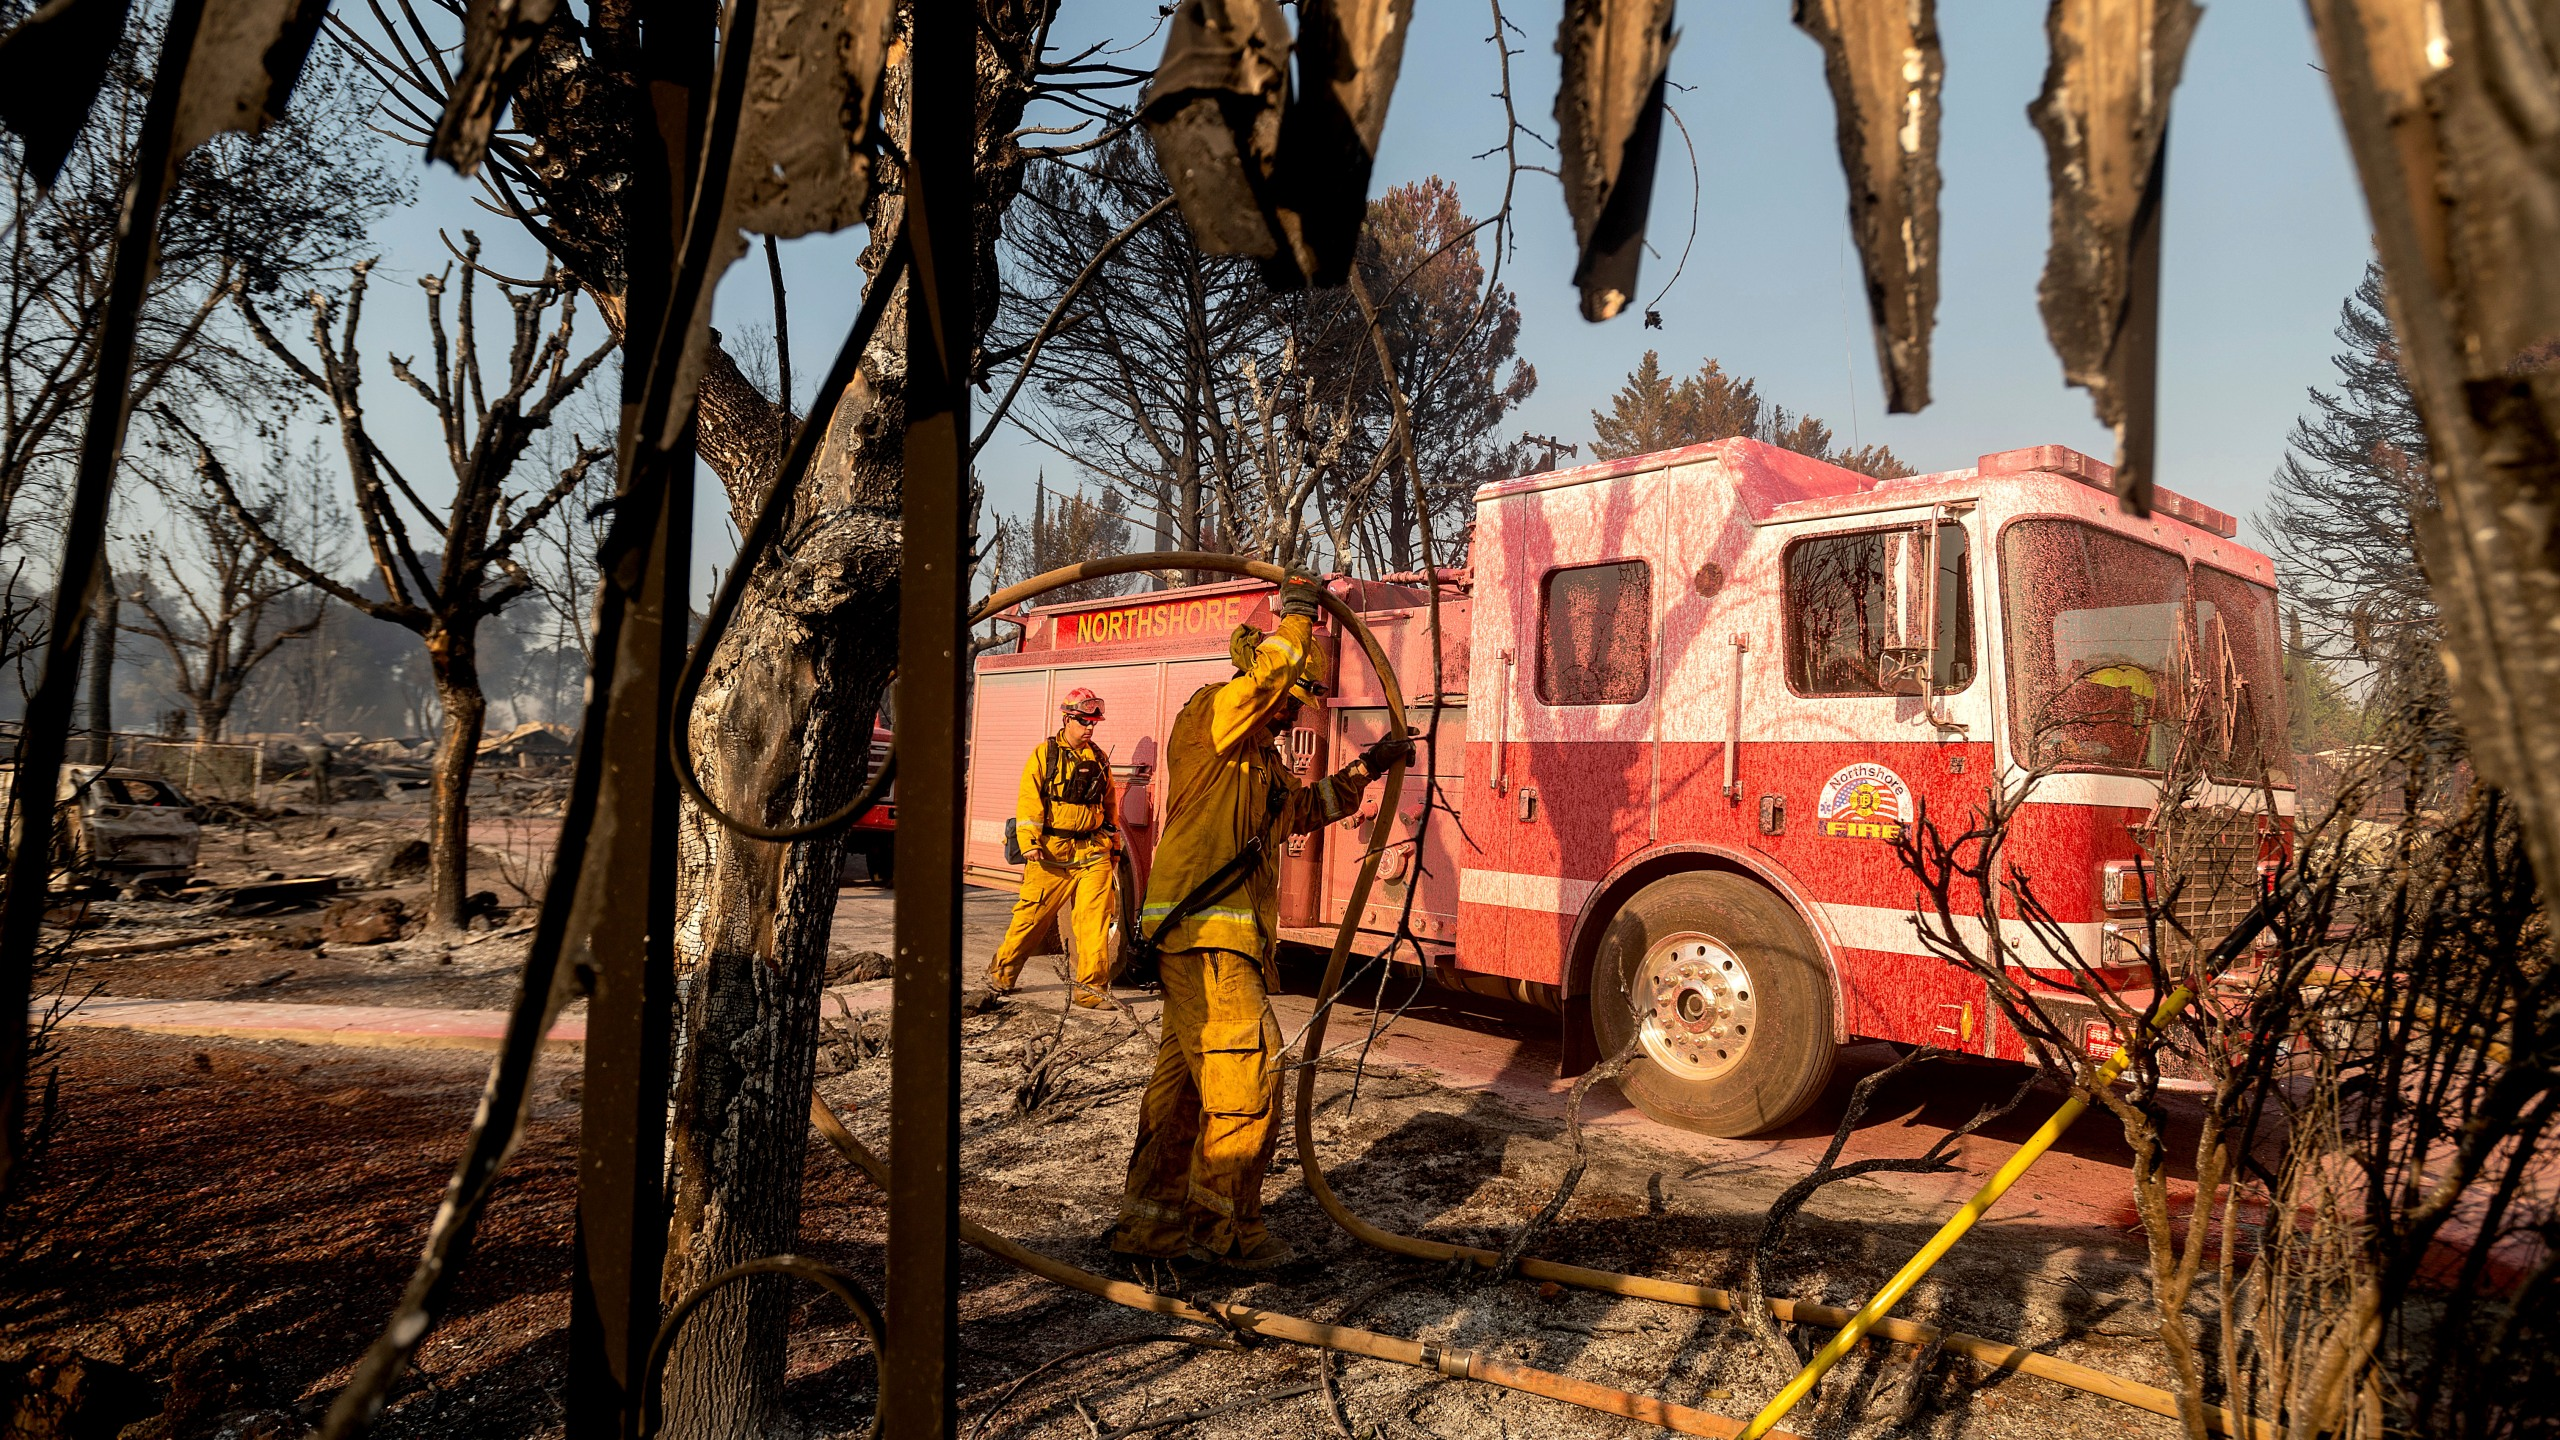 Firefighters mop up at Cache Creek Mobile Home Estates where the Cache Fire leveled dozens of residences on Wednesday, Aug. 18, 2021, in Clearlake, Calif. (AP Photo/Noah Berger)